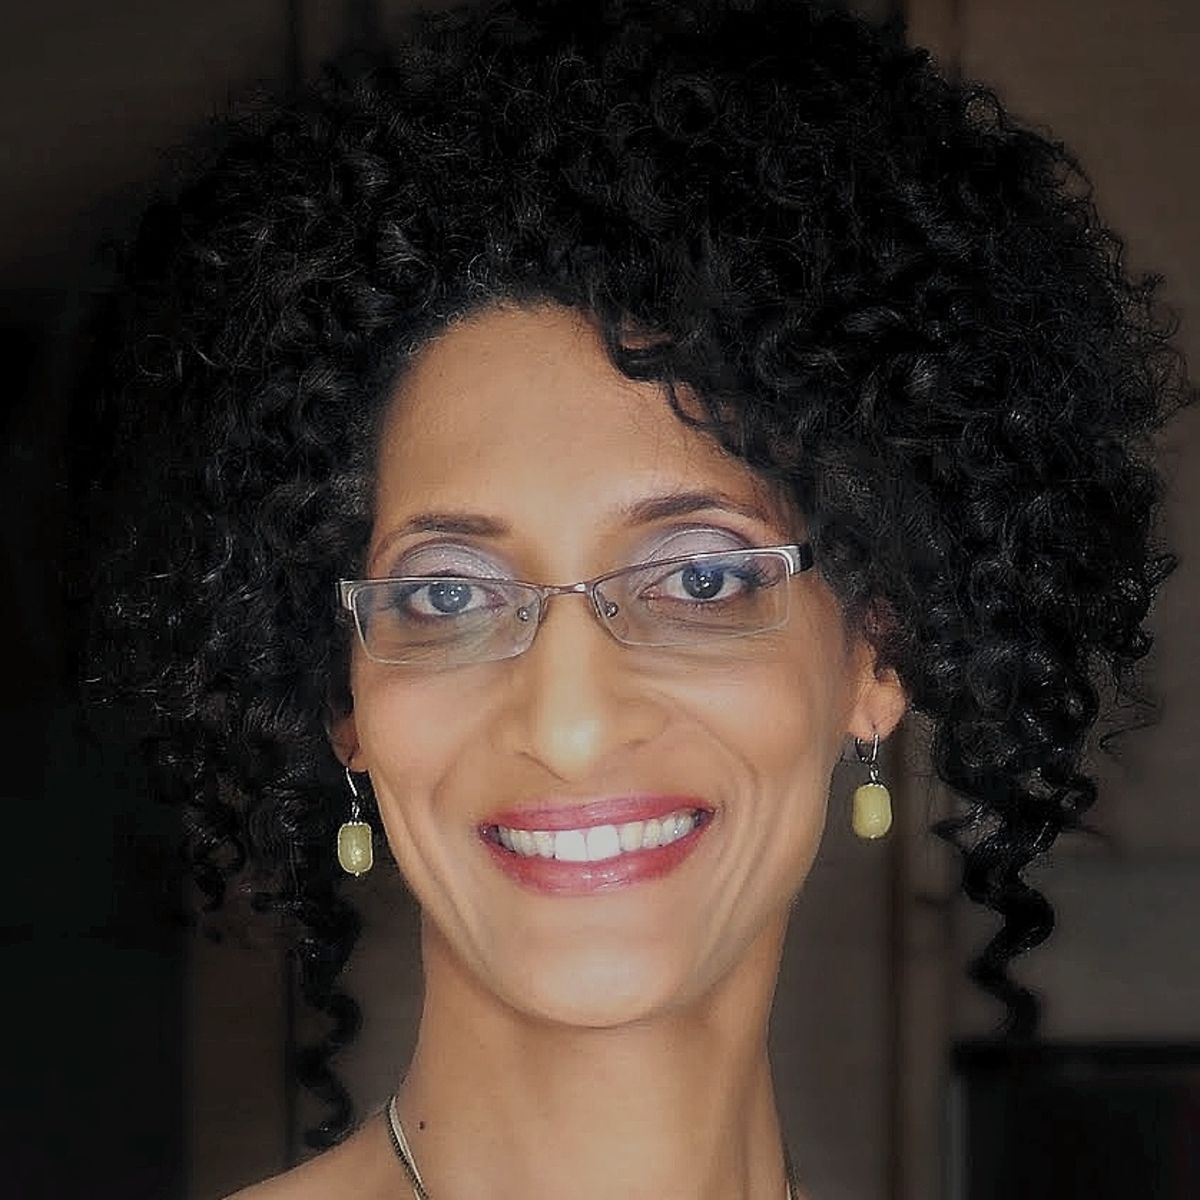 Top Chef And Co-host Of The Chew, Carla Hall Is An Alum Of